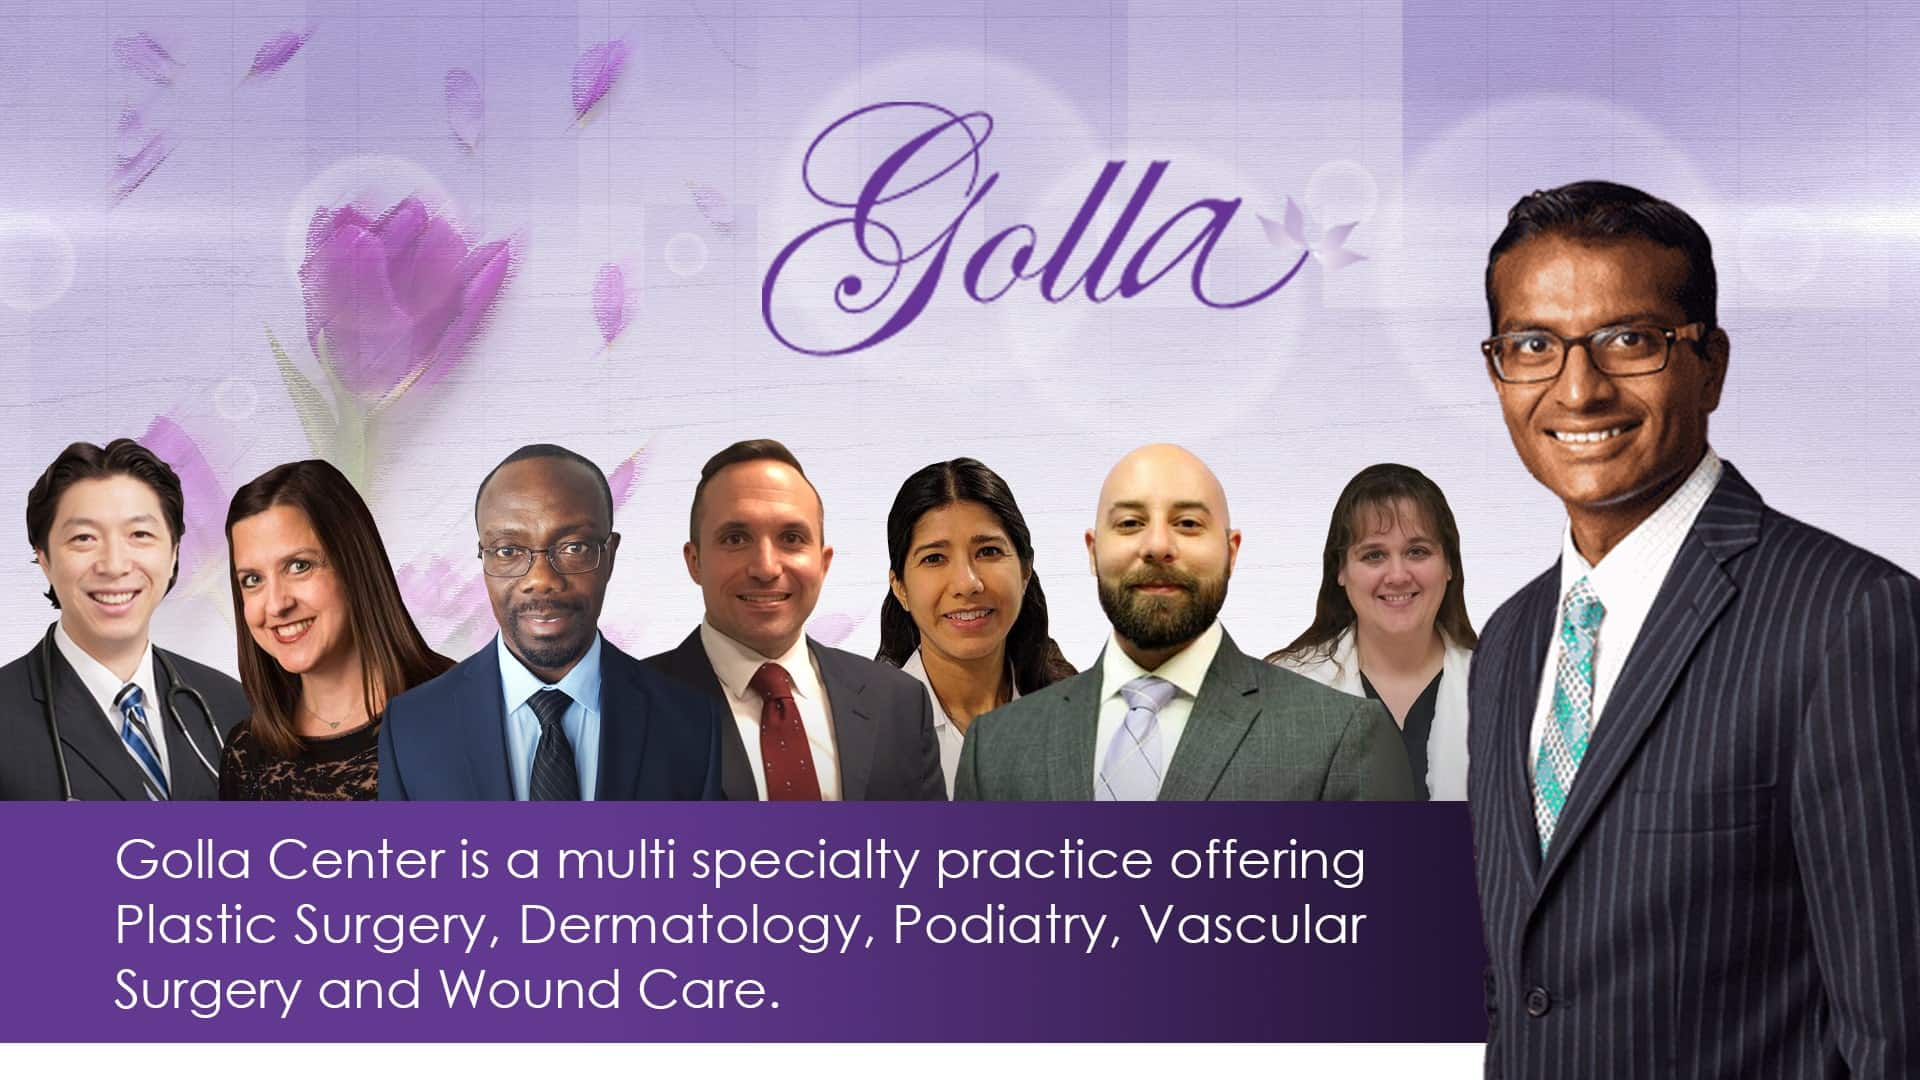 Pittsburgh Plastic Surgery from the team at Golla Center